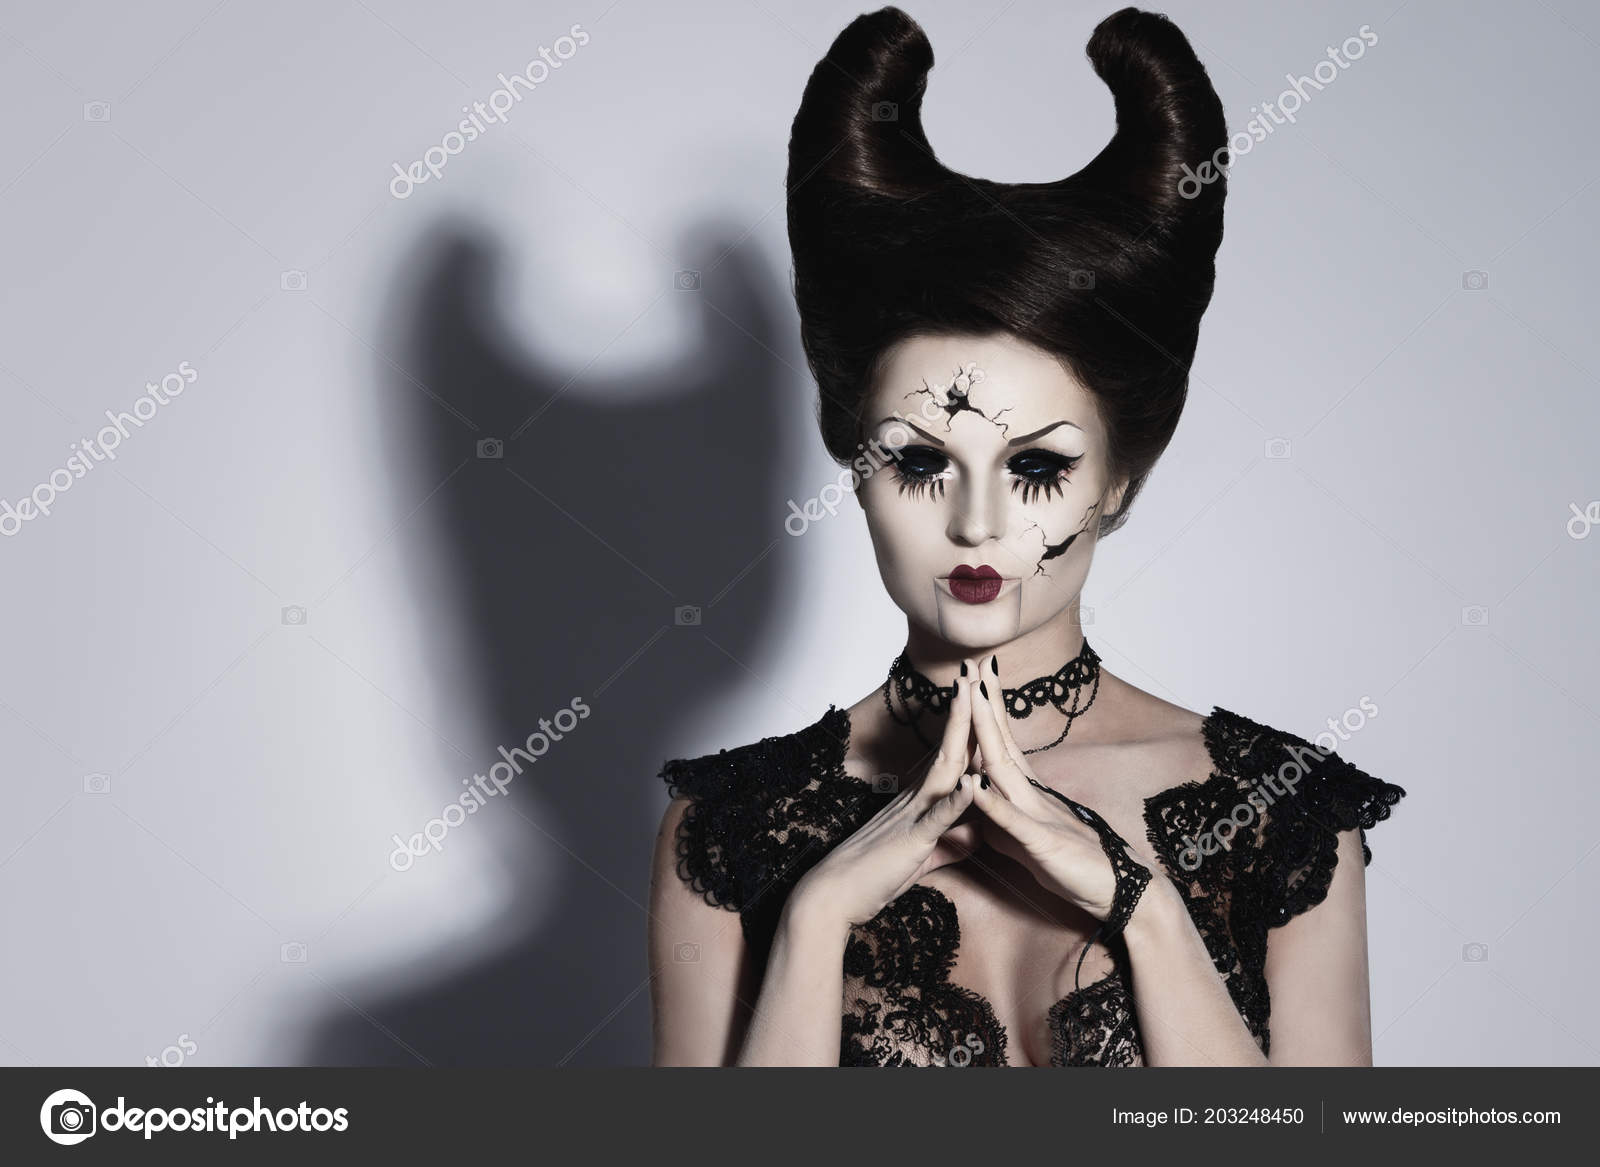 model creative image halloween spooky porcelain doll horns her head stock photo